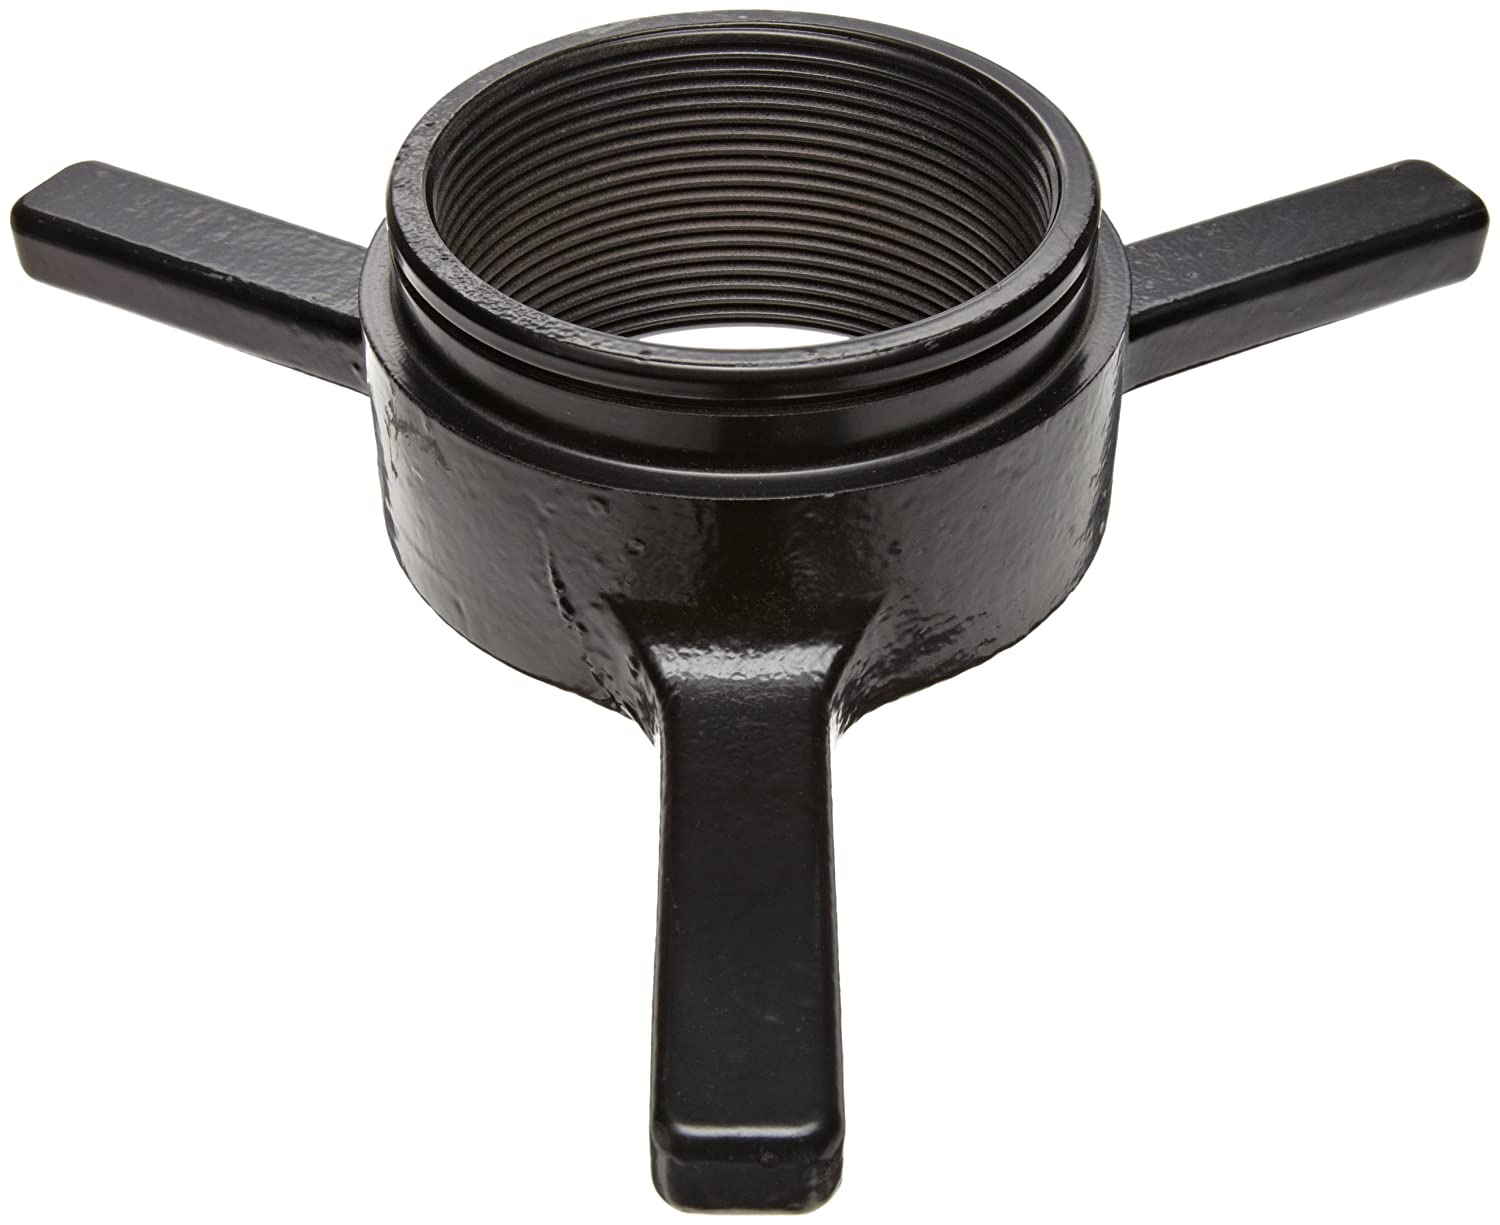 Posi Lock Puller Posi Lock PH-11357 Puller T-Handle, For Use With PH-113 and PH-213 at Sears.com